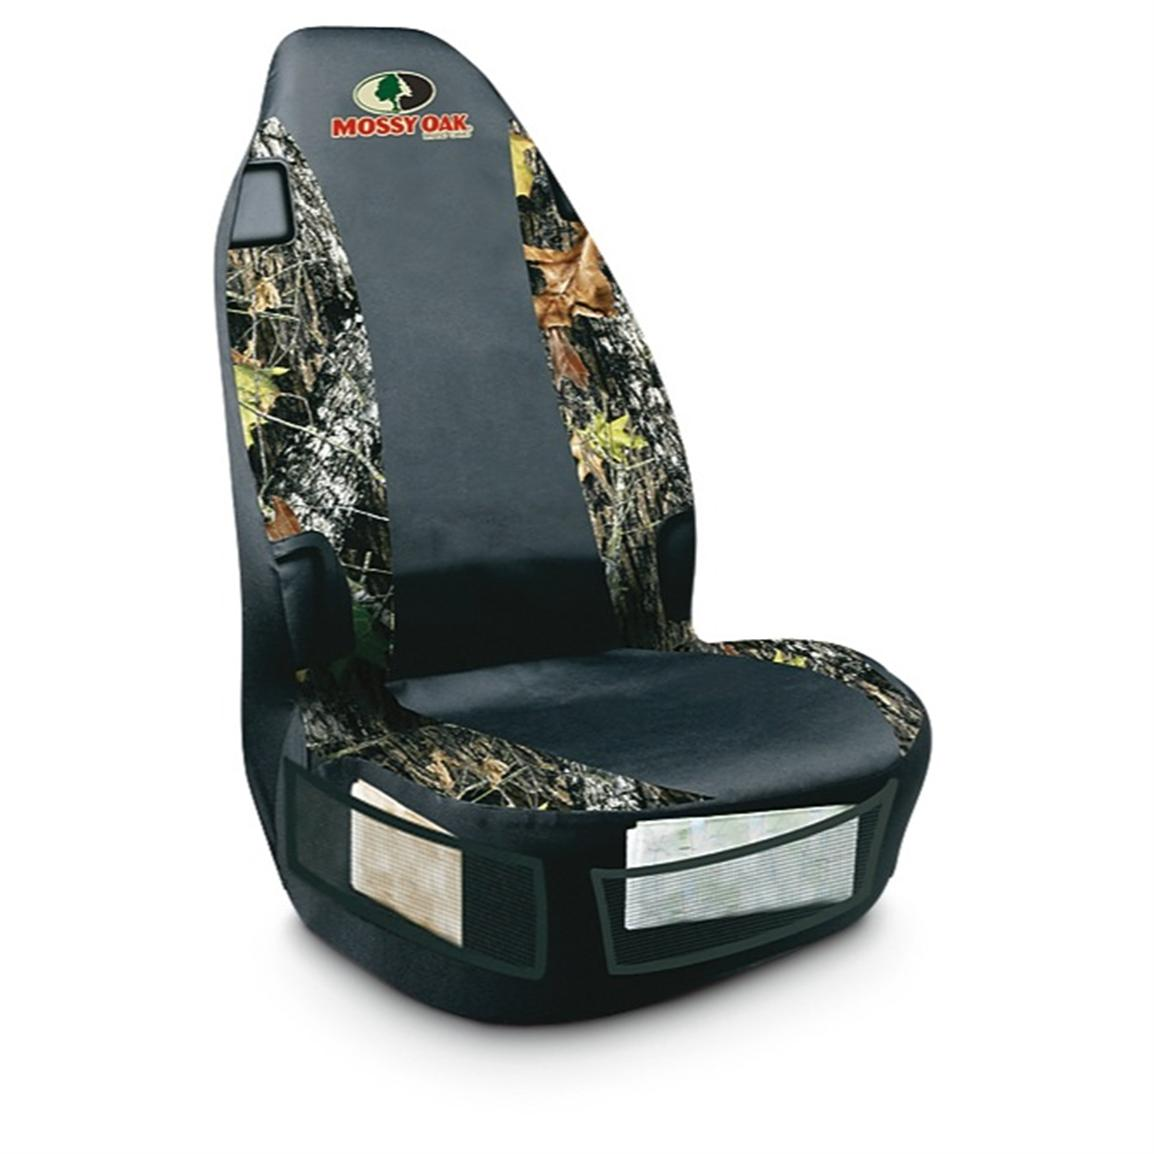 Bucket Seat Cover  202030 Seat Covers at Sportsmans Guide